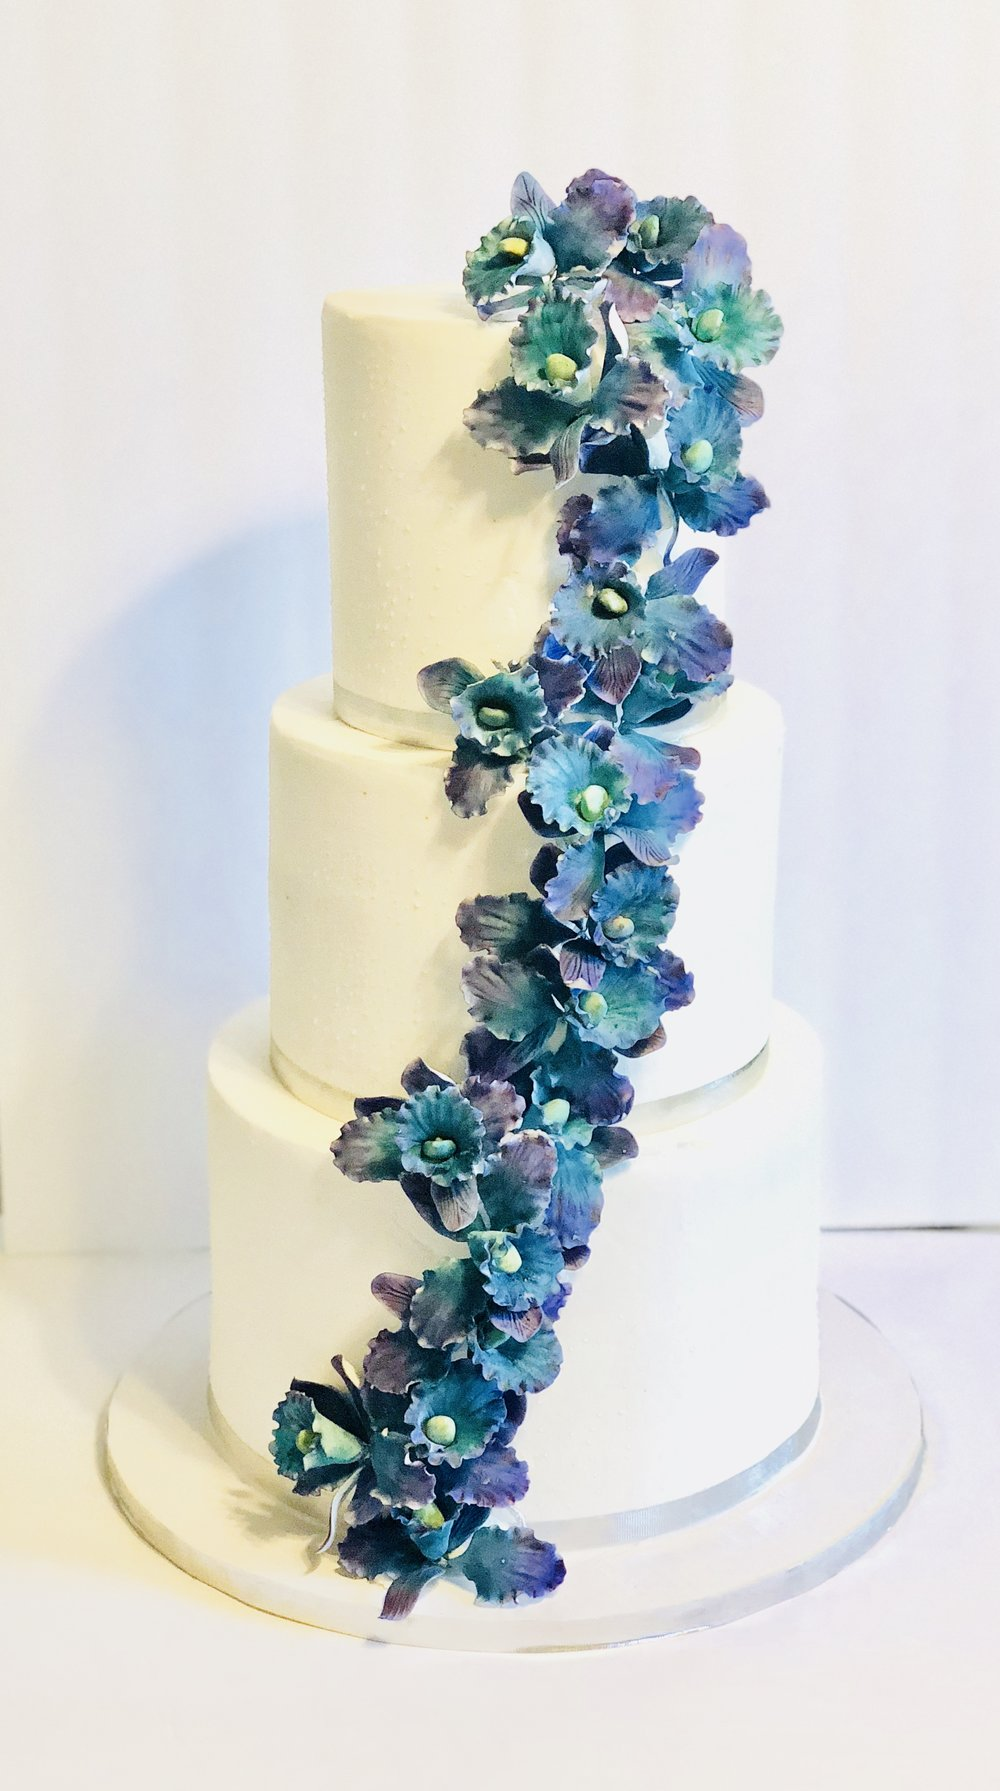 Designer Cakes Nashville TN Based Bakery, City Girl Treats Nashville Wedding Cakes